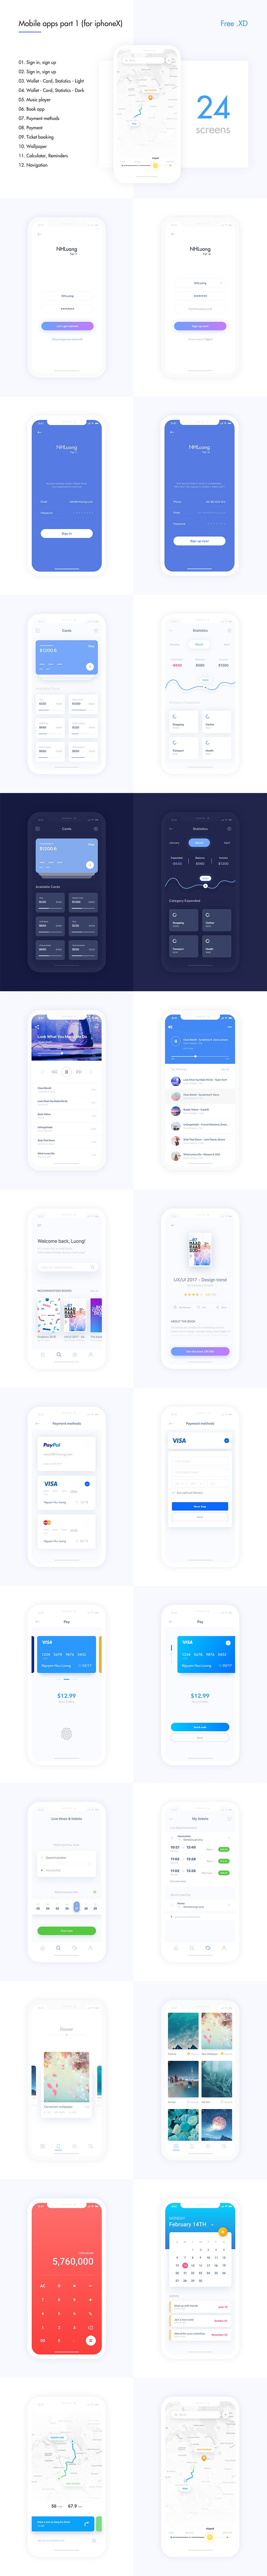 Mobile Apps for iPhone X and Adobe Xd